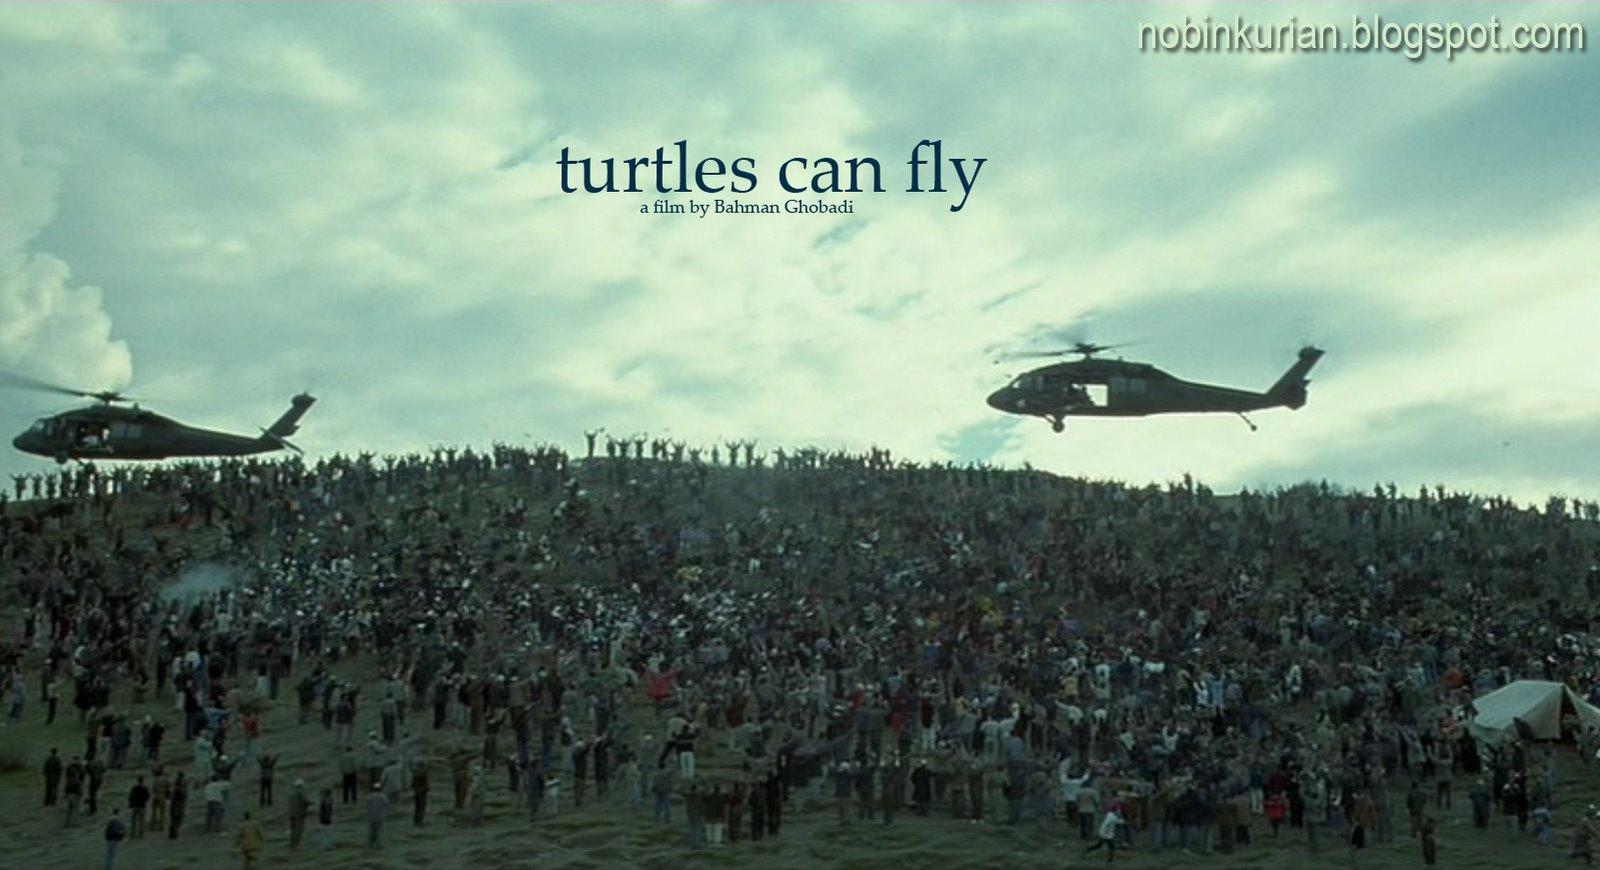 turtles can fly movie response Near the iraqi-turkish border on the eve of an american invasion, refugee children like 13-year-old kak (ebrahim), gauge and await their fate.